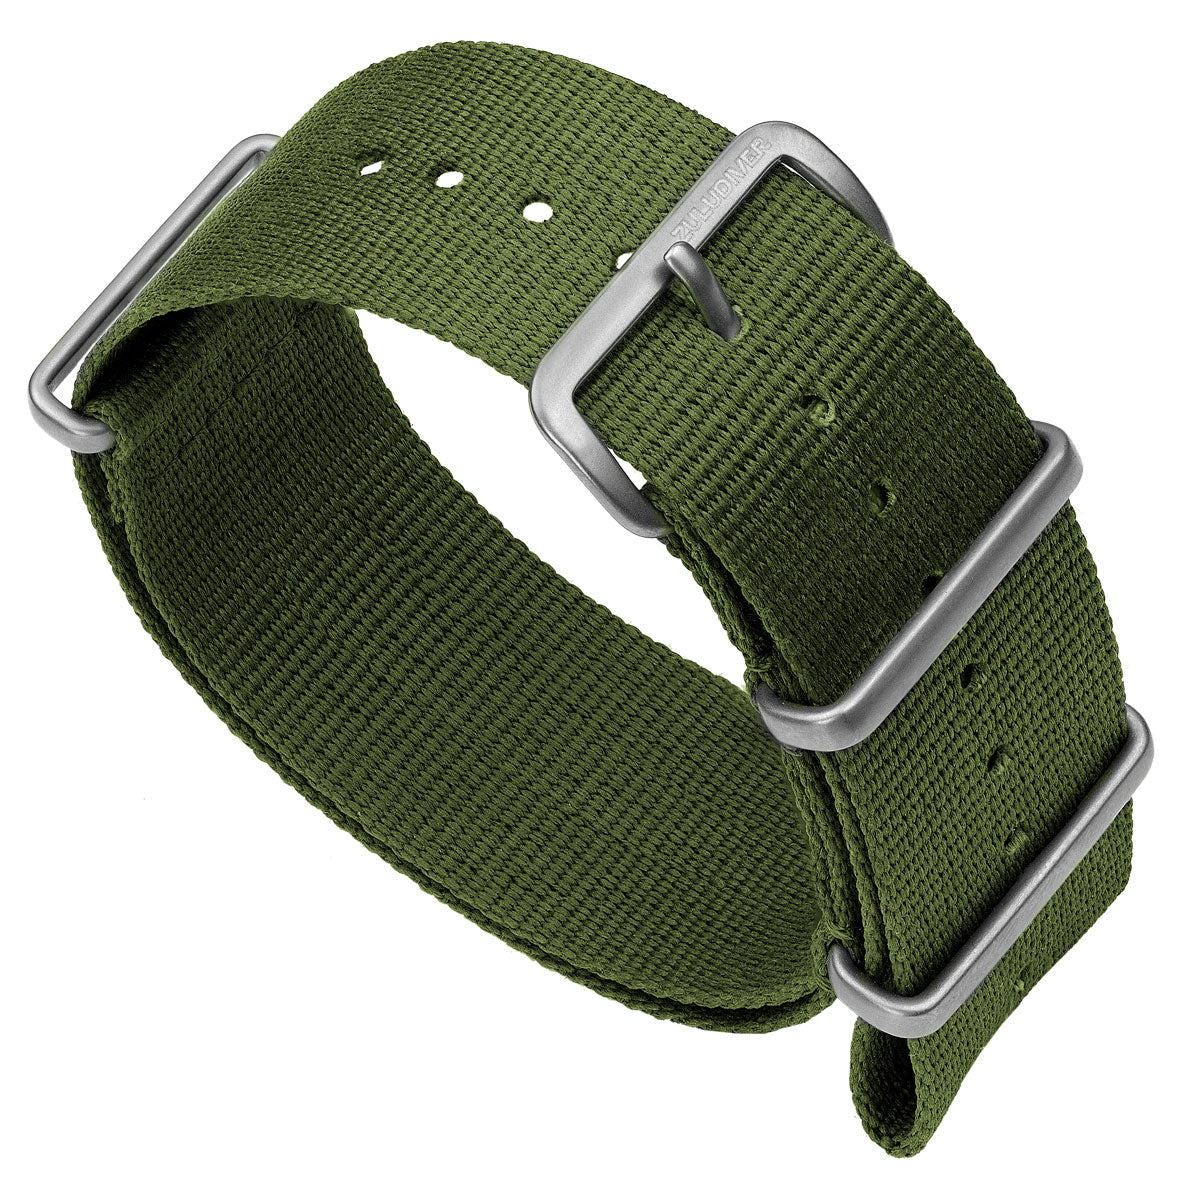 Classic ZULUDIVER Military Colour NATO Watch Strap, Satin Hardware